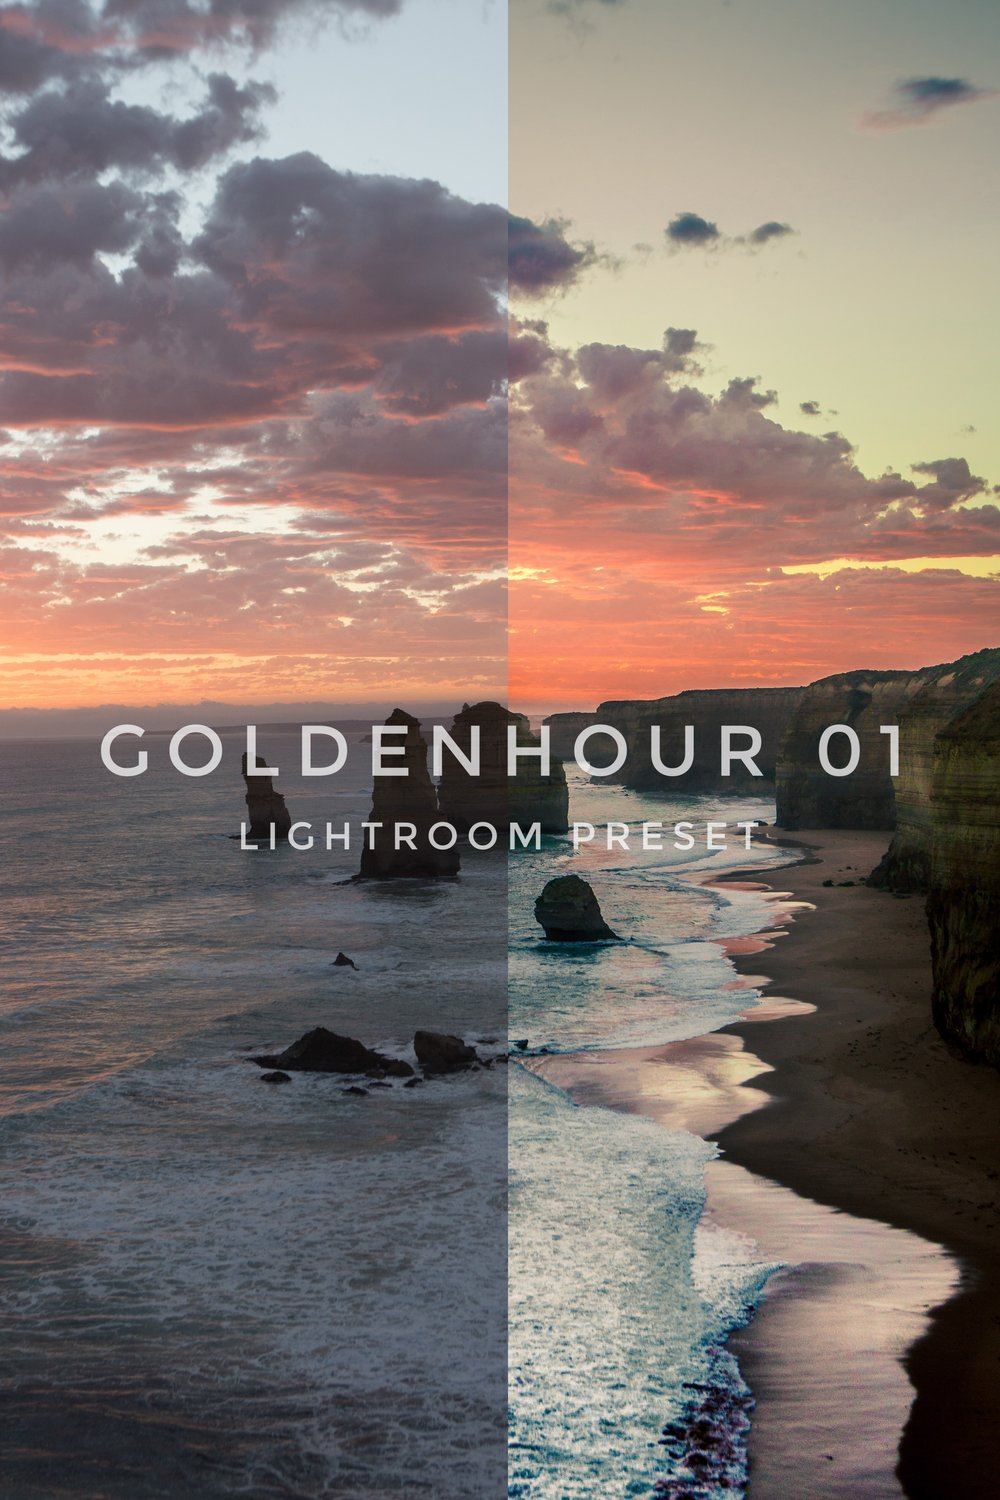 Goldenhour 01 - Inspired by films and movies, the unique color of the sky and mid-tone is the essence to achieve the cinematic look on your photographs.